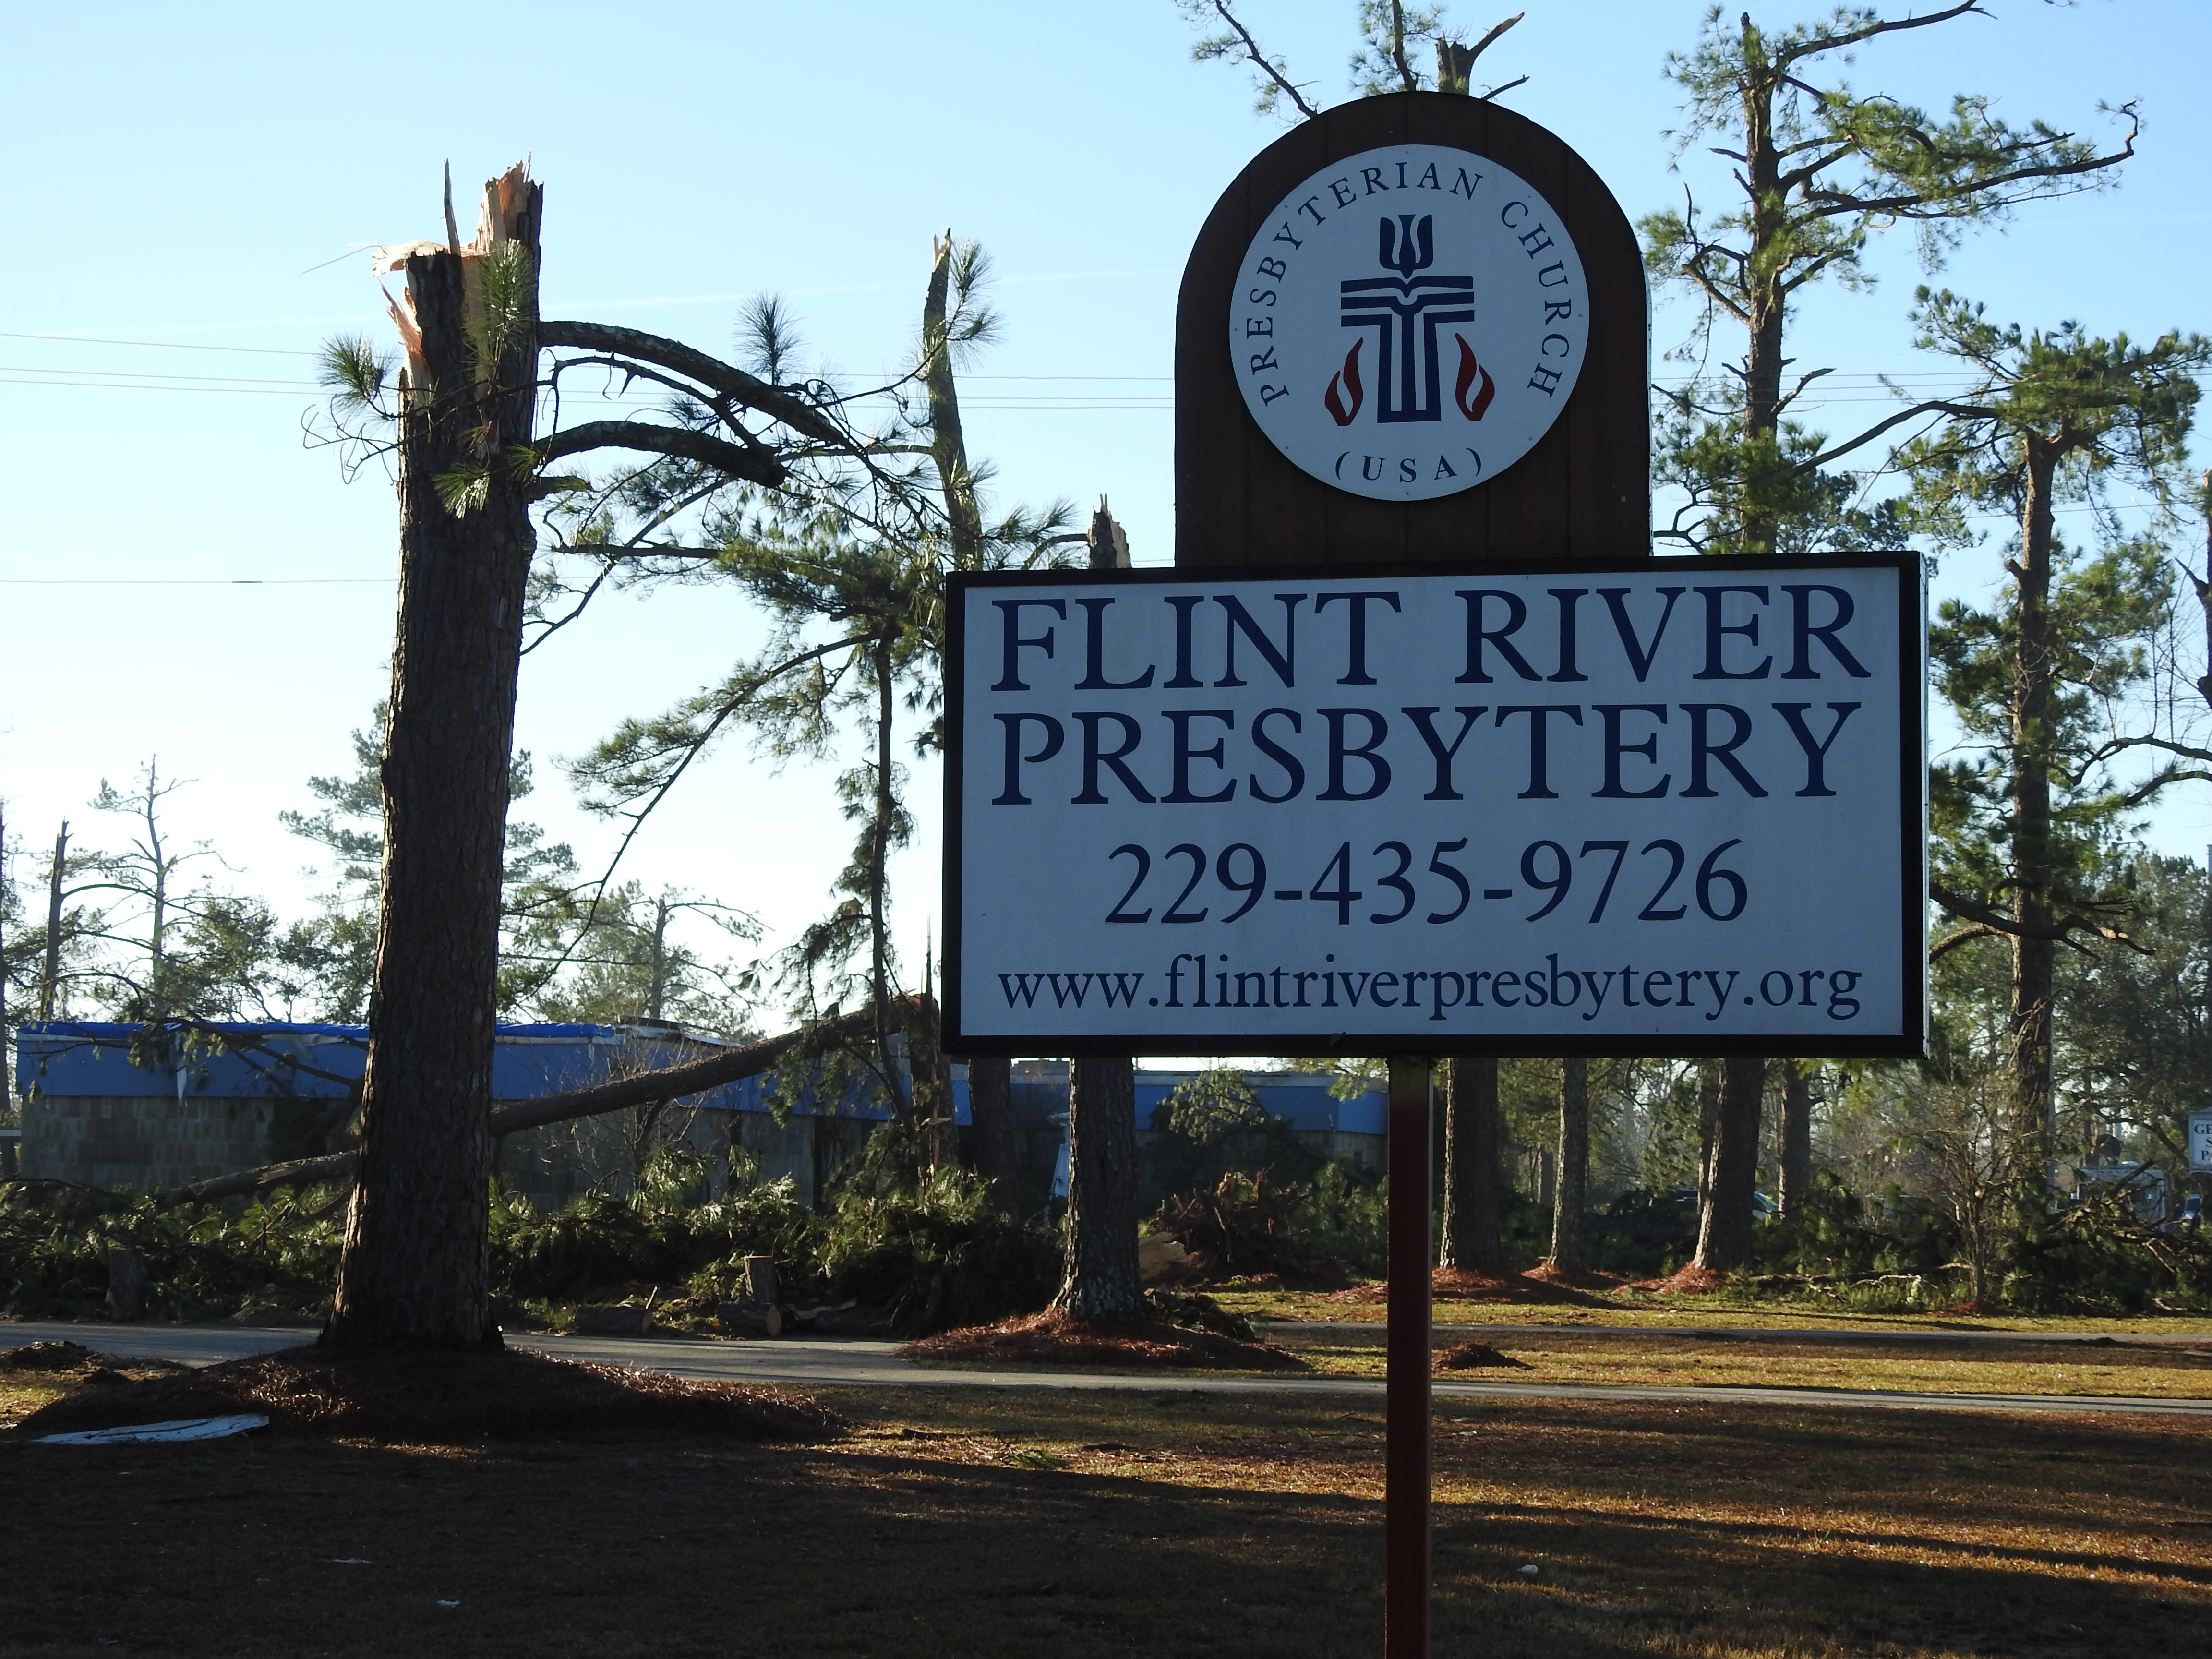 a damaged tree next to the sign for Flint River Presbytery